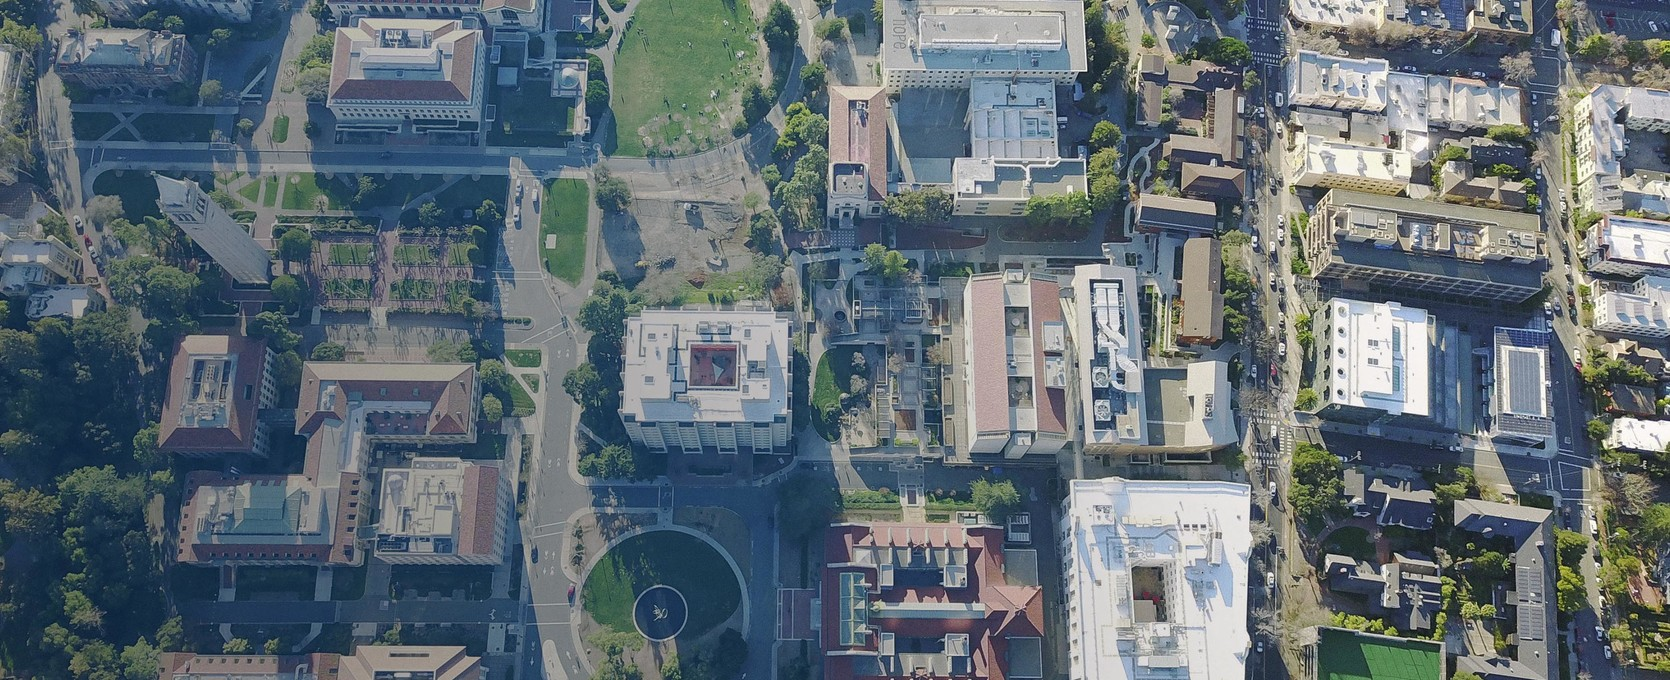 Aerial view of a community